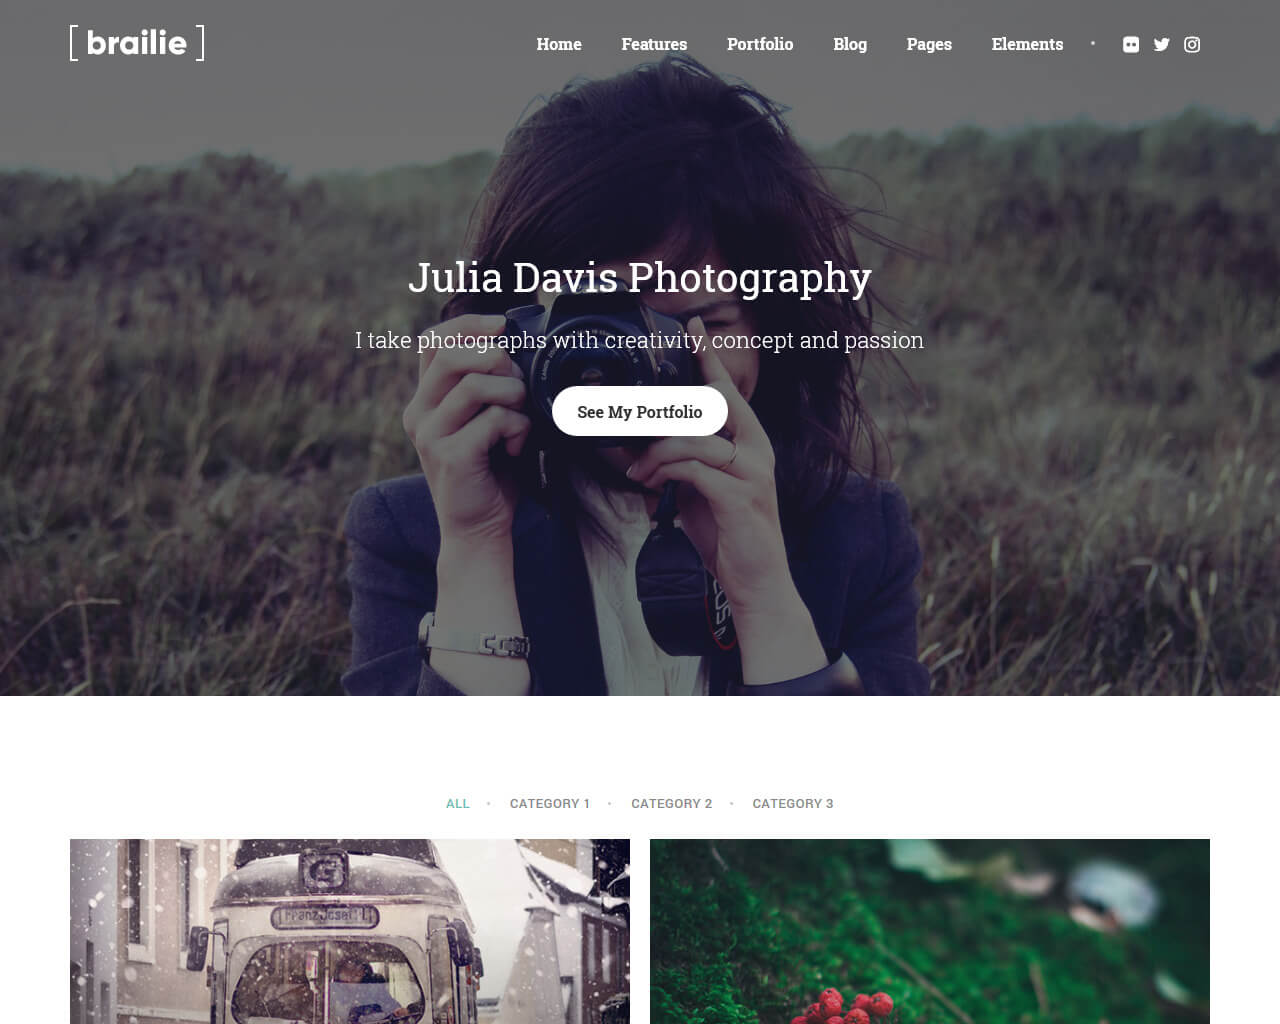 Brailie Website Template